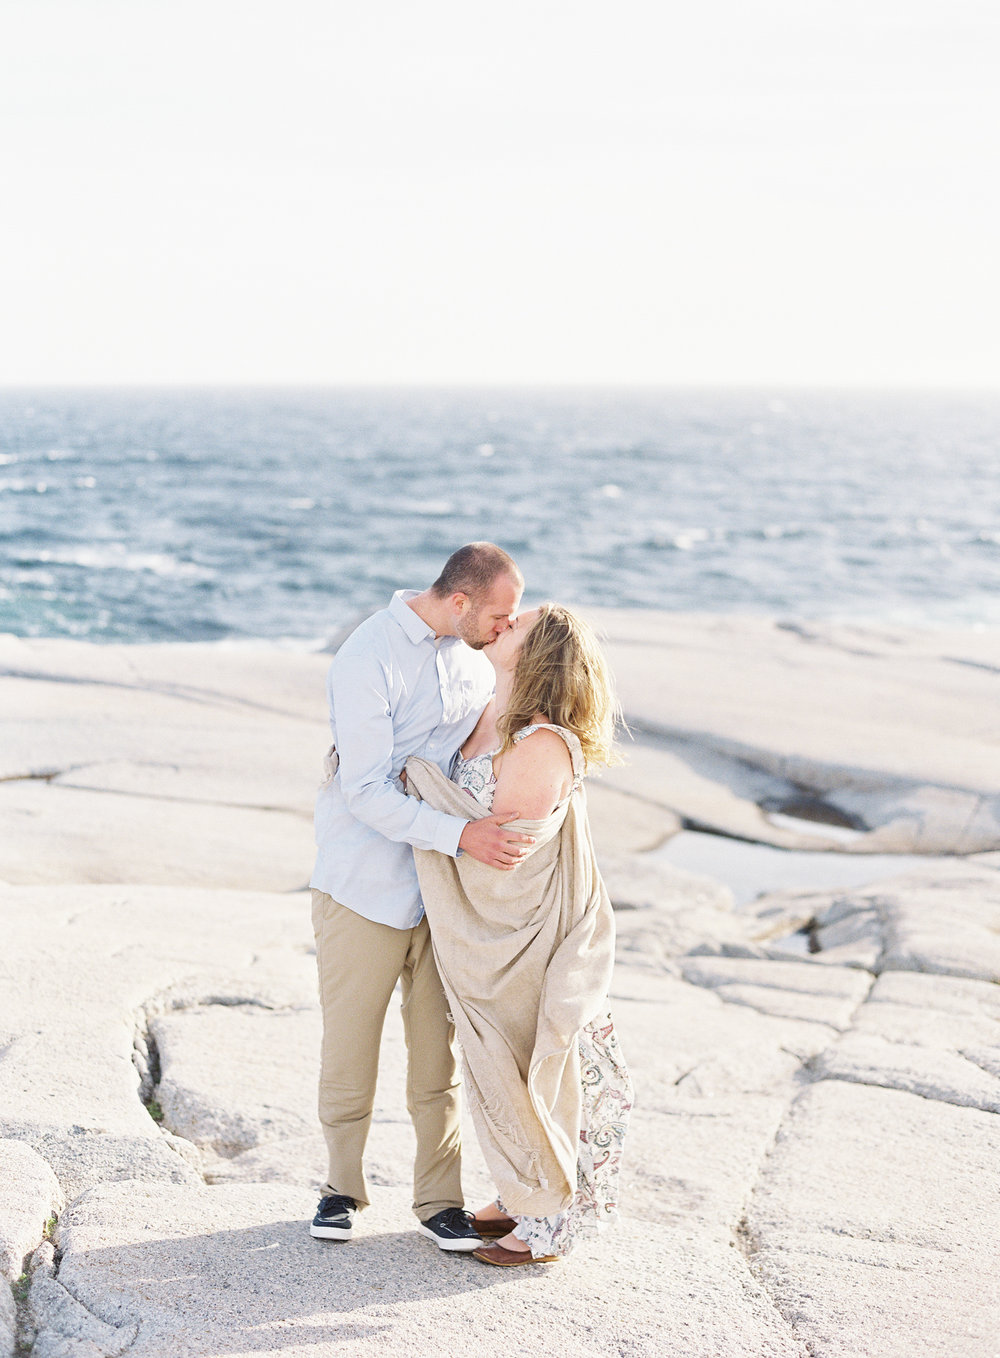 Jacqueline Anne Photography - Alex and Andrew Engagement at Peggy's Cove - Halifax-106.jpg